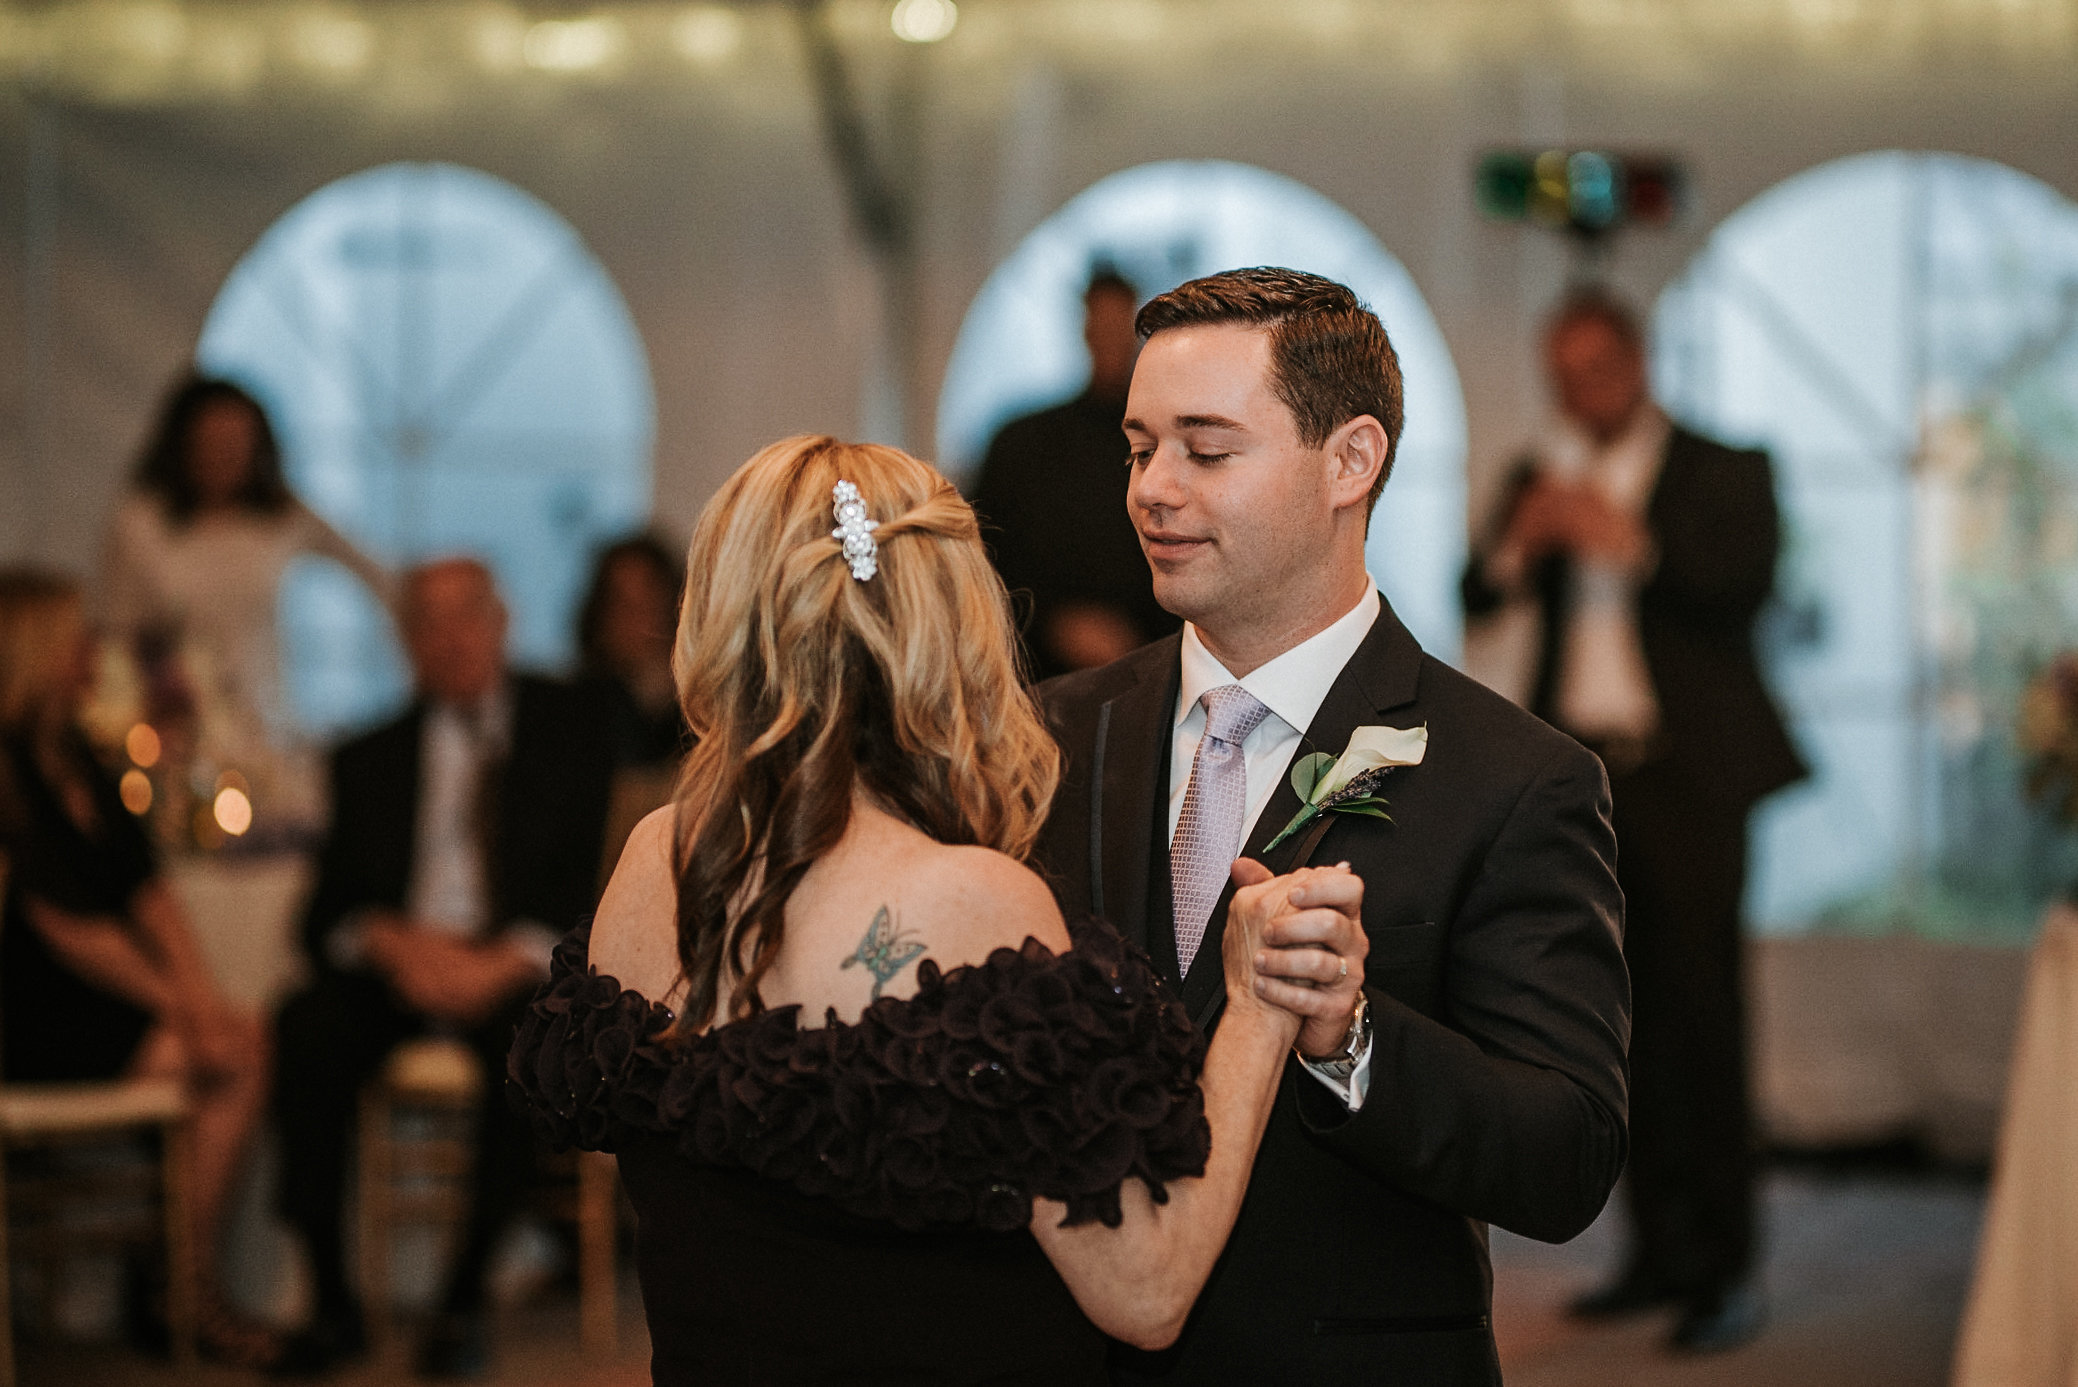 Mother and son dance at wedding